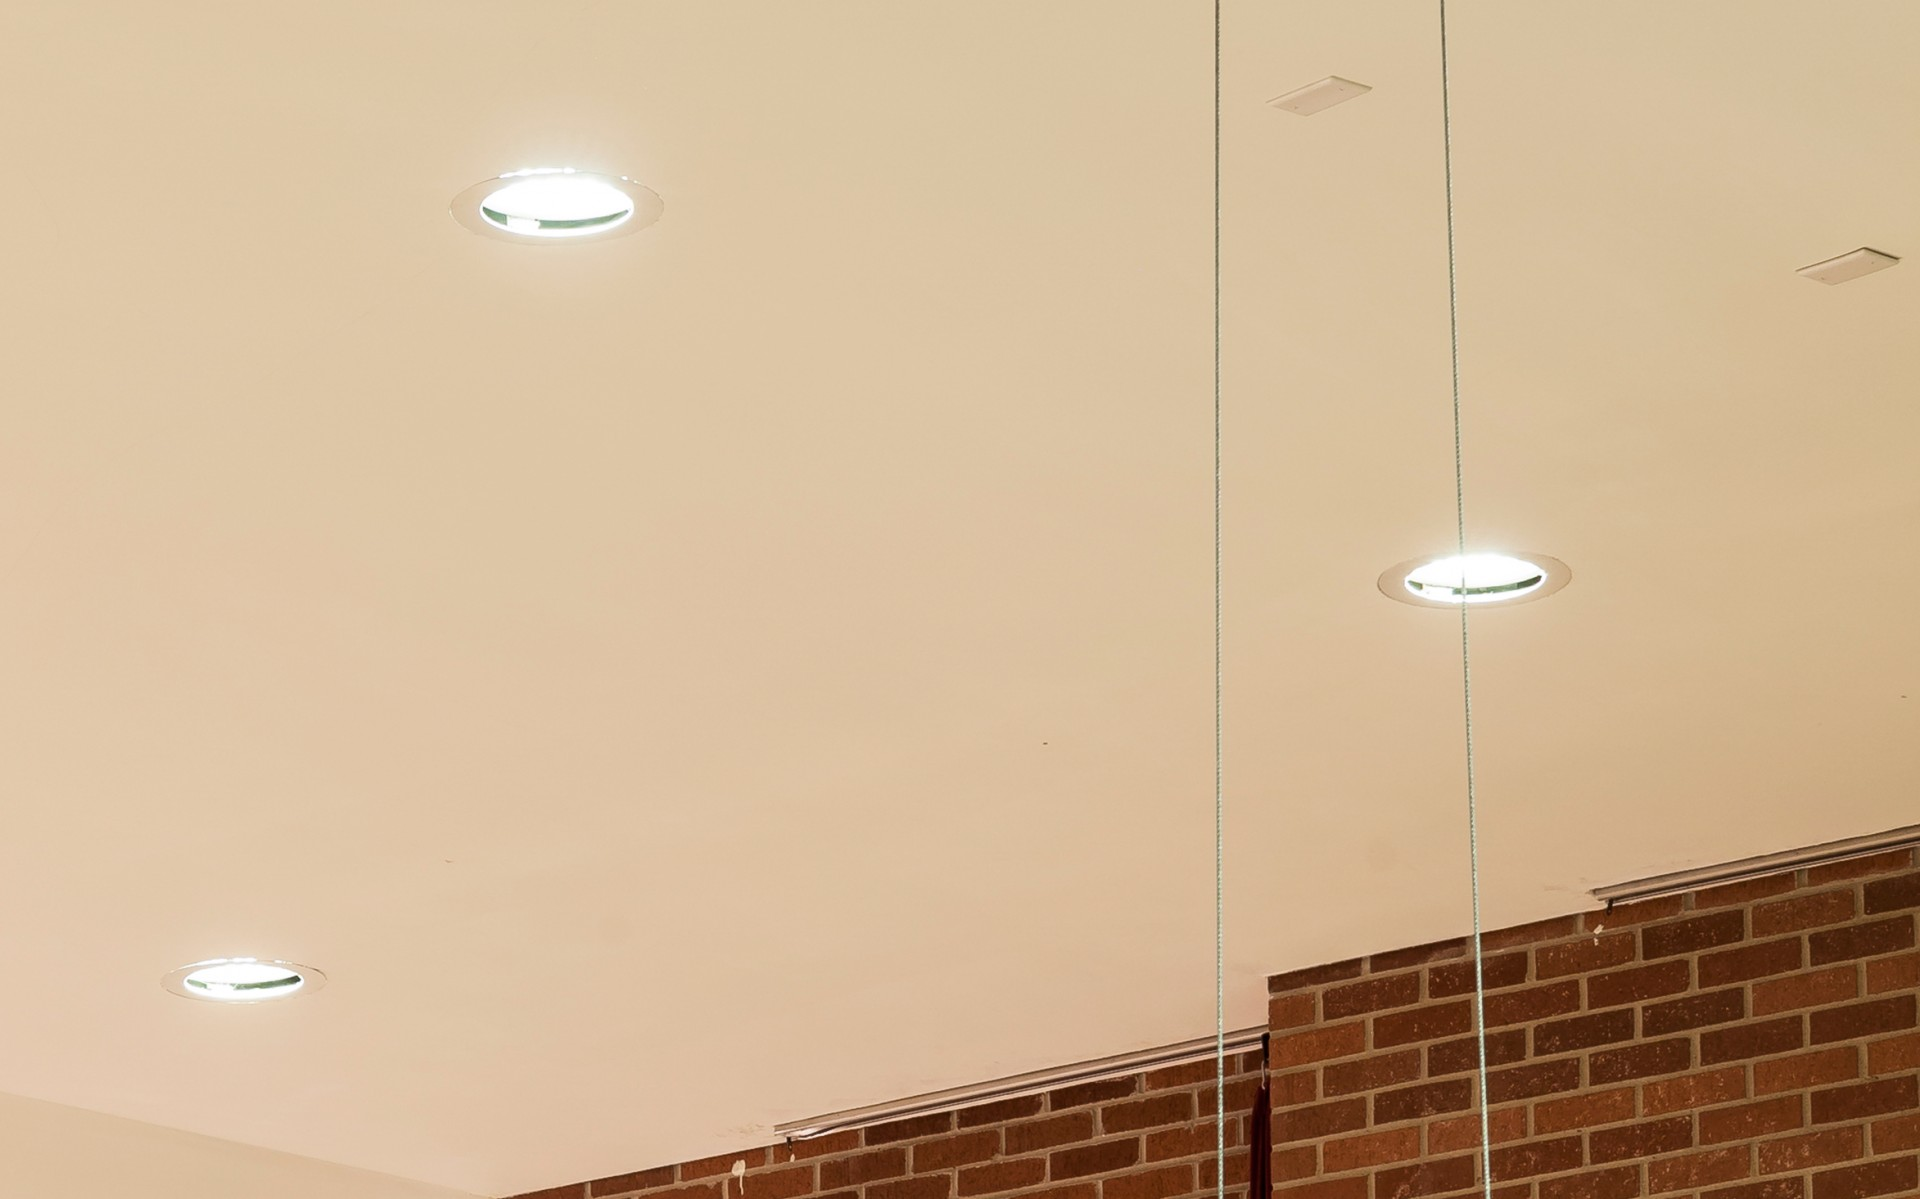 To limit renovation work, new LED luminaires had to fit existing holes in the ceiling.